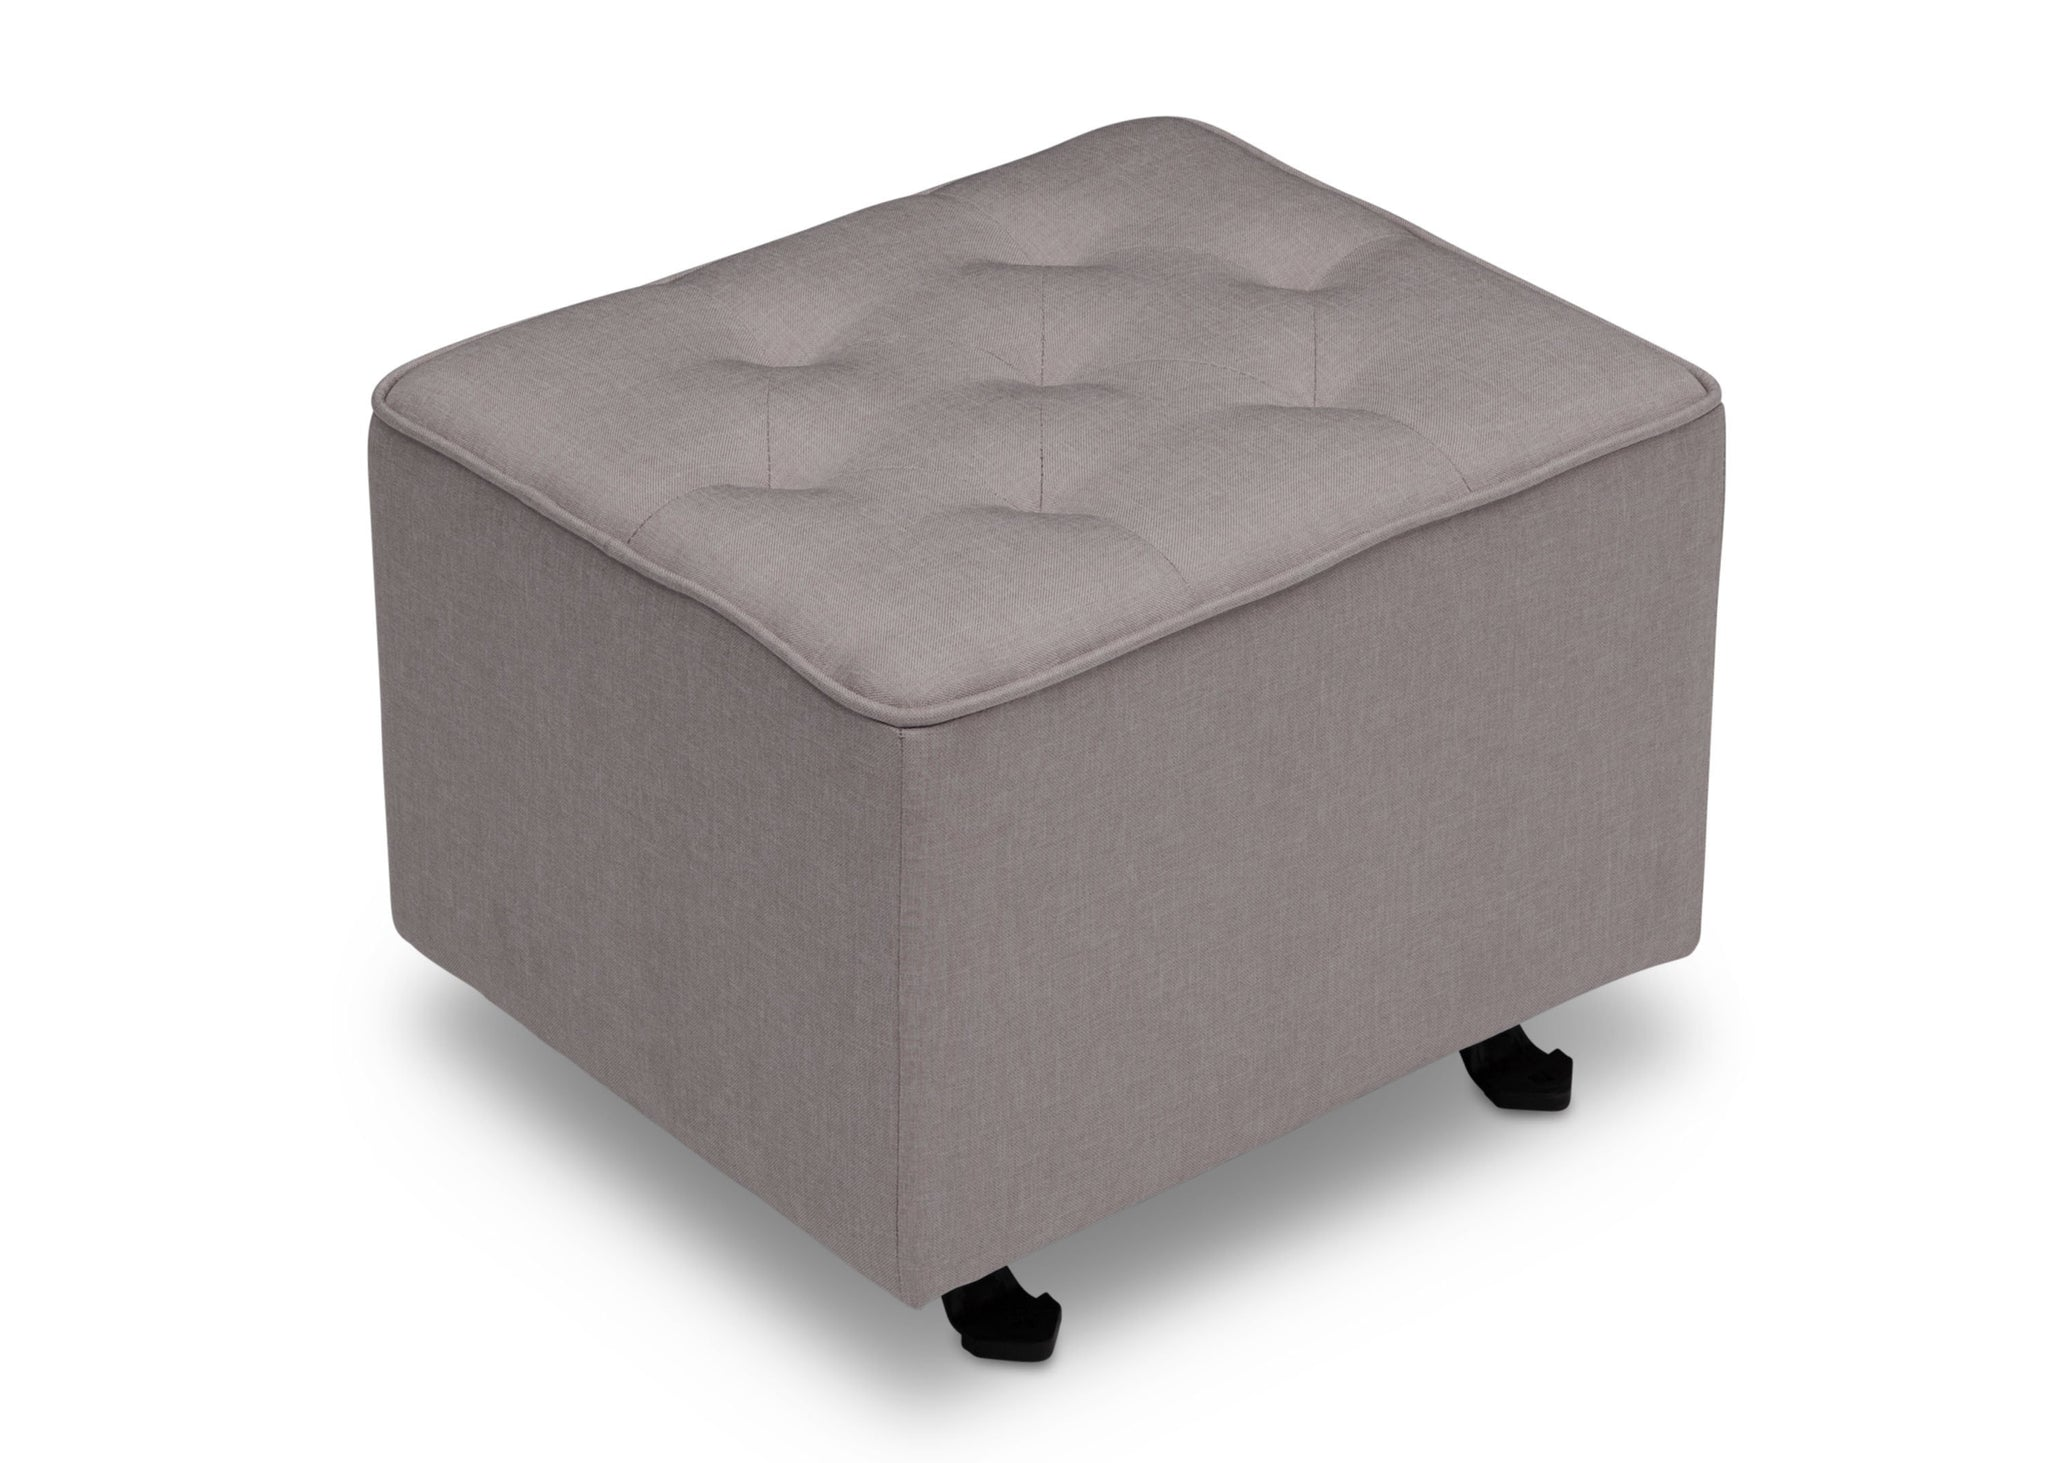 Delta Children French Grey (1304) Emma Diamond Tufted Nursery Gliding Ottoman, side view, d2d